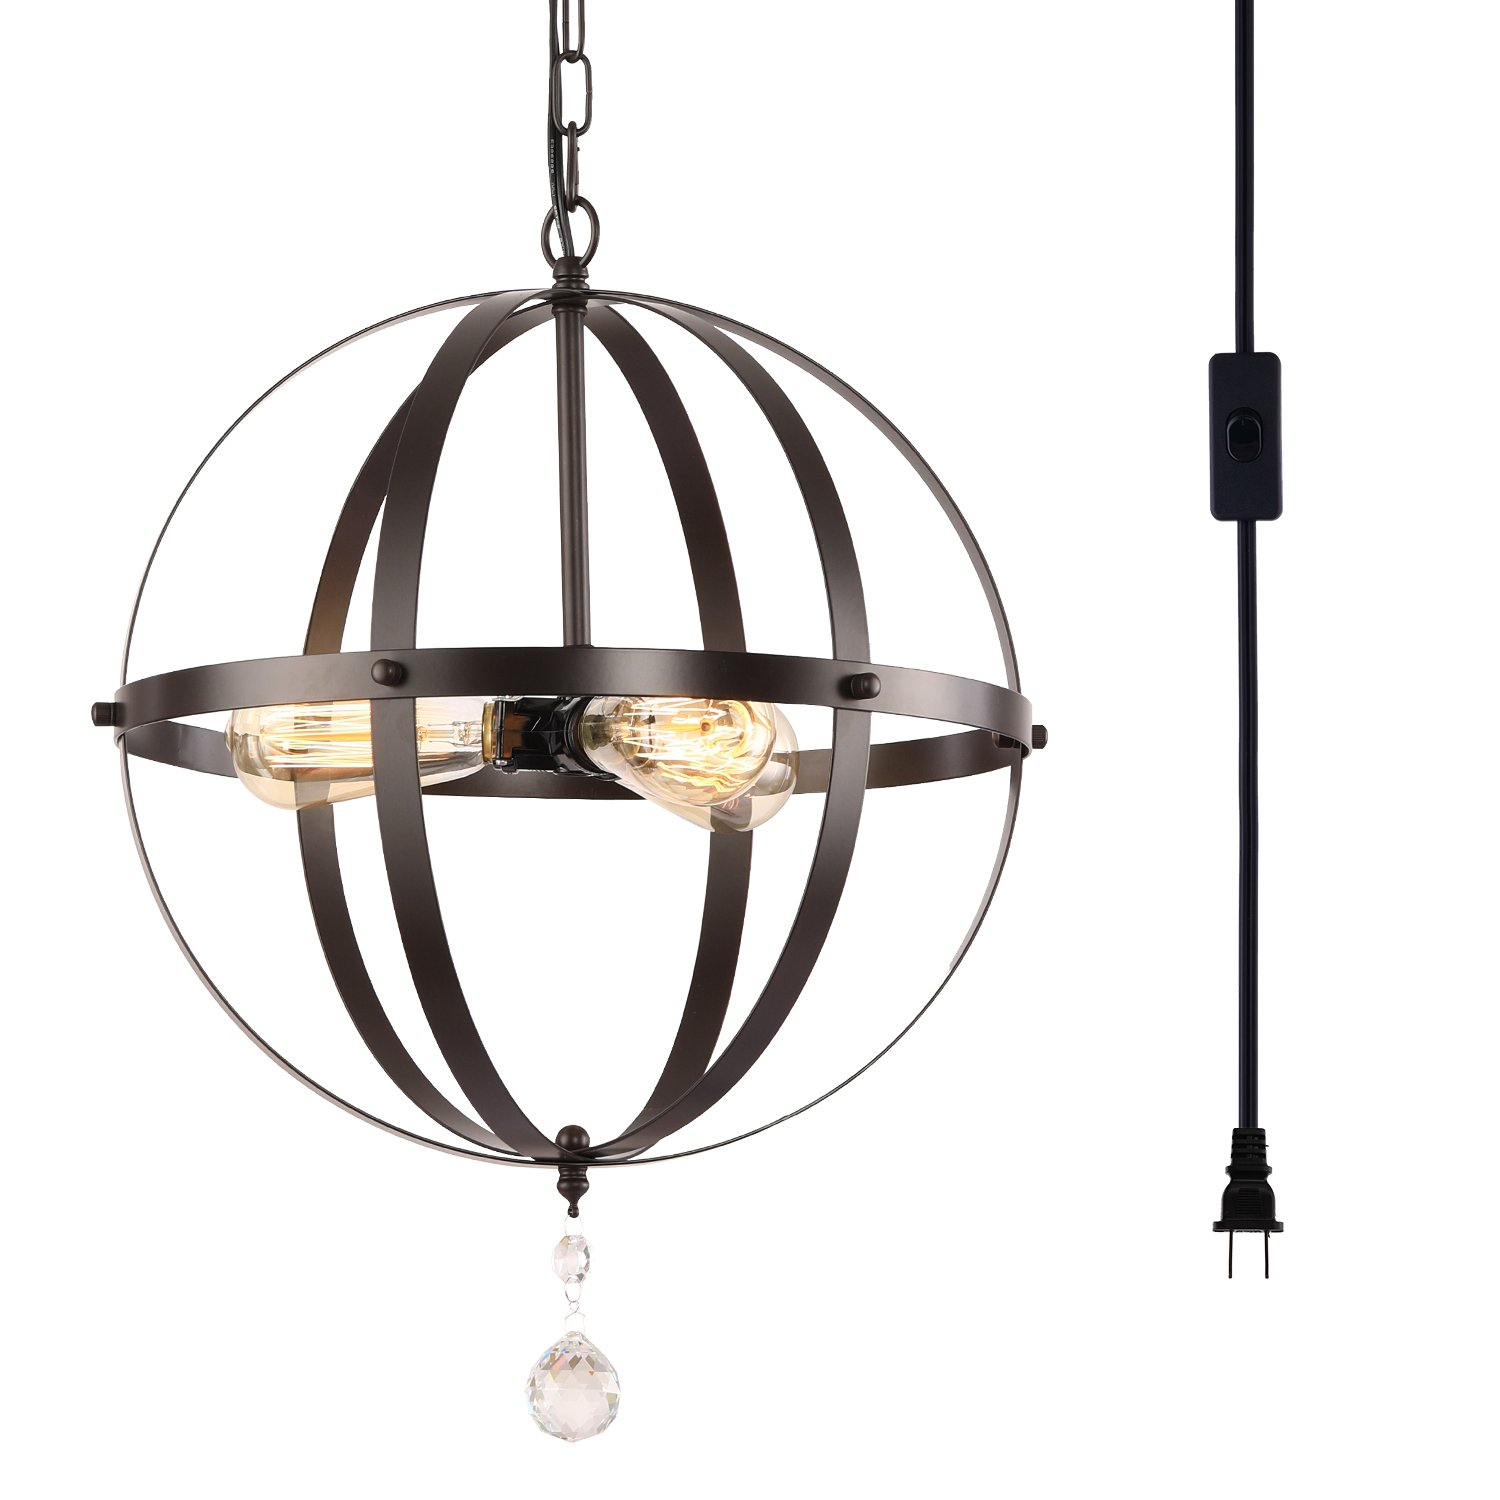 HMVPL Plug-in Industrial 3 Light Globe Pendant with 16.4 Ft Hanging Cord and Toggle Switch, Oil Rubbed Bronze Finish, Vintage Metal Chandelier Ceiling Light Fixture